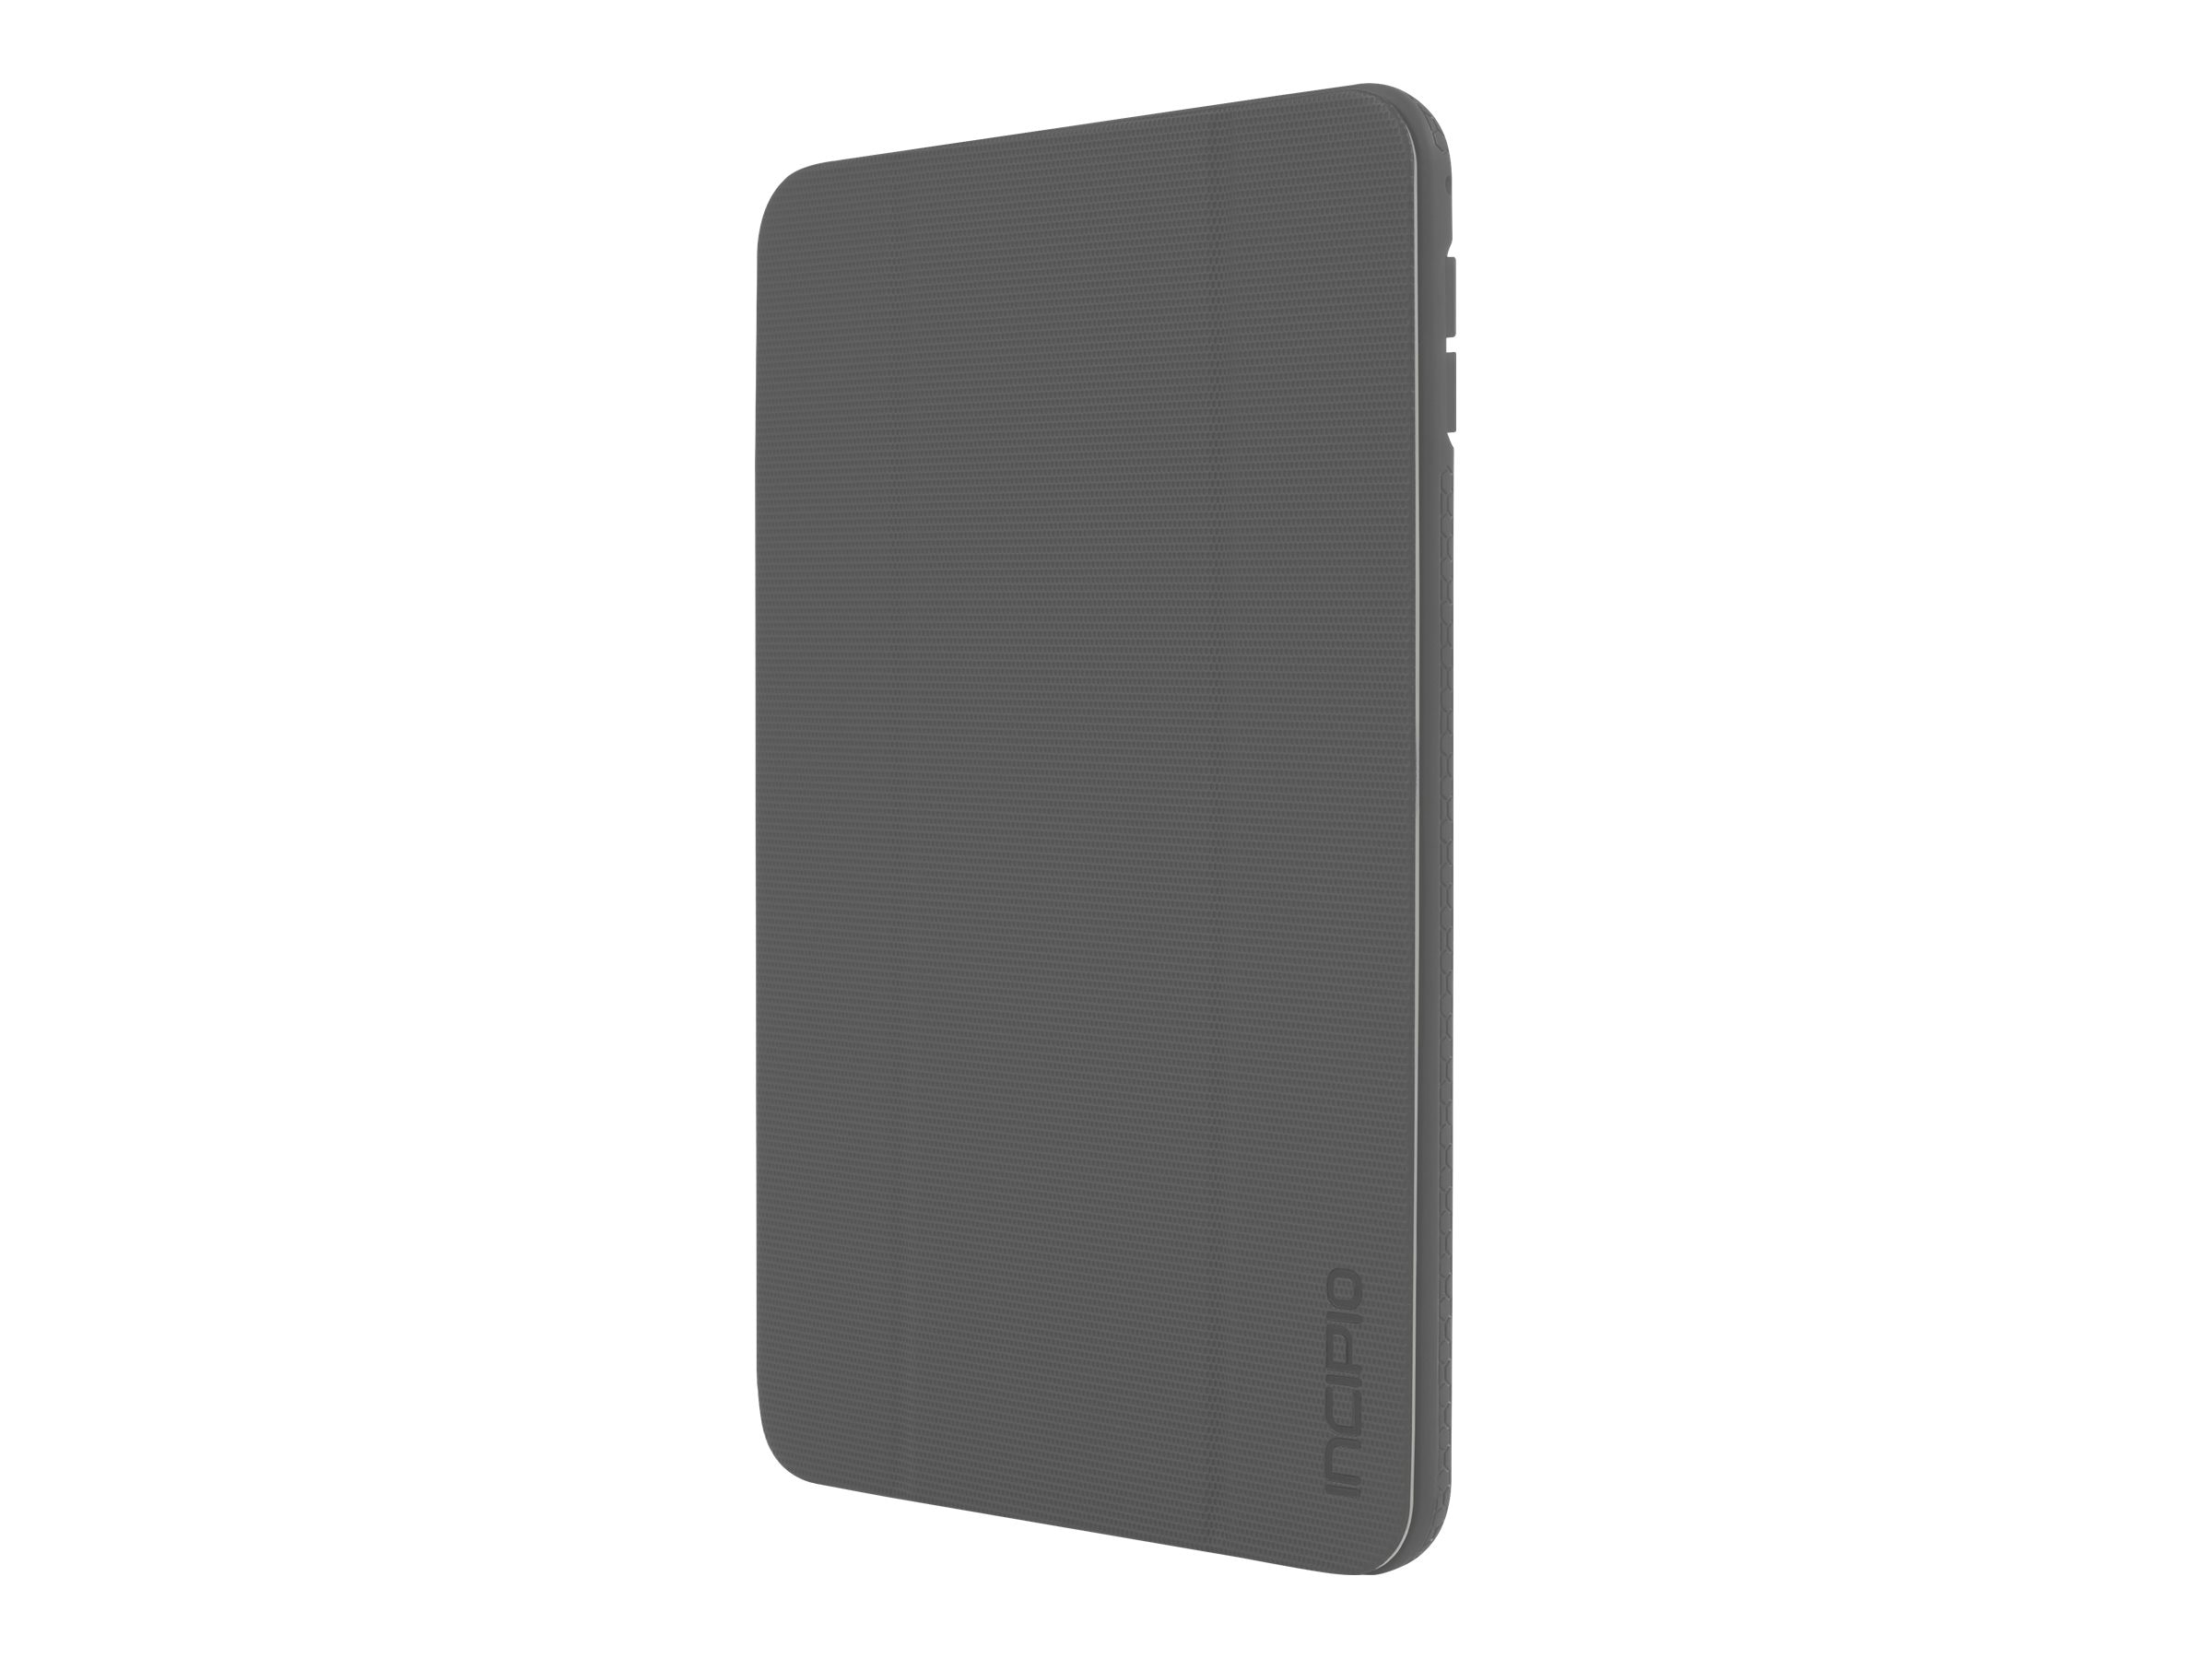 Incipio Octane Co-Molded Impact Absorbing Folio for iPad mini 4, Gray